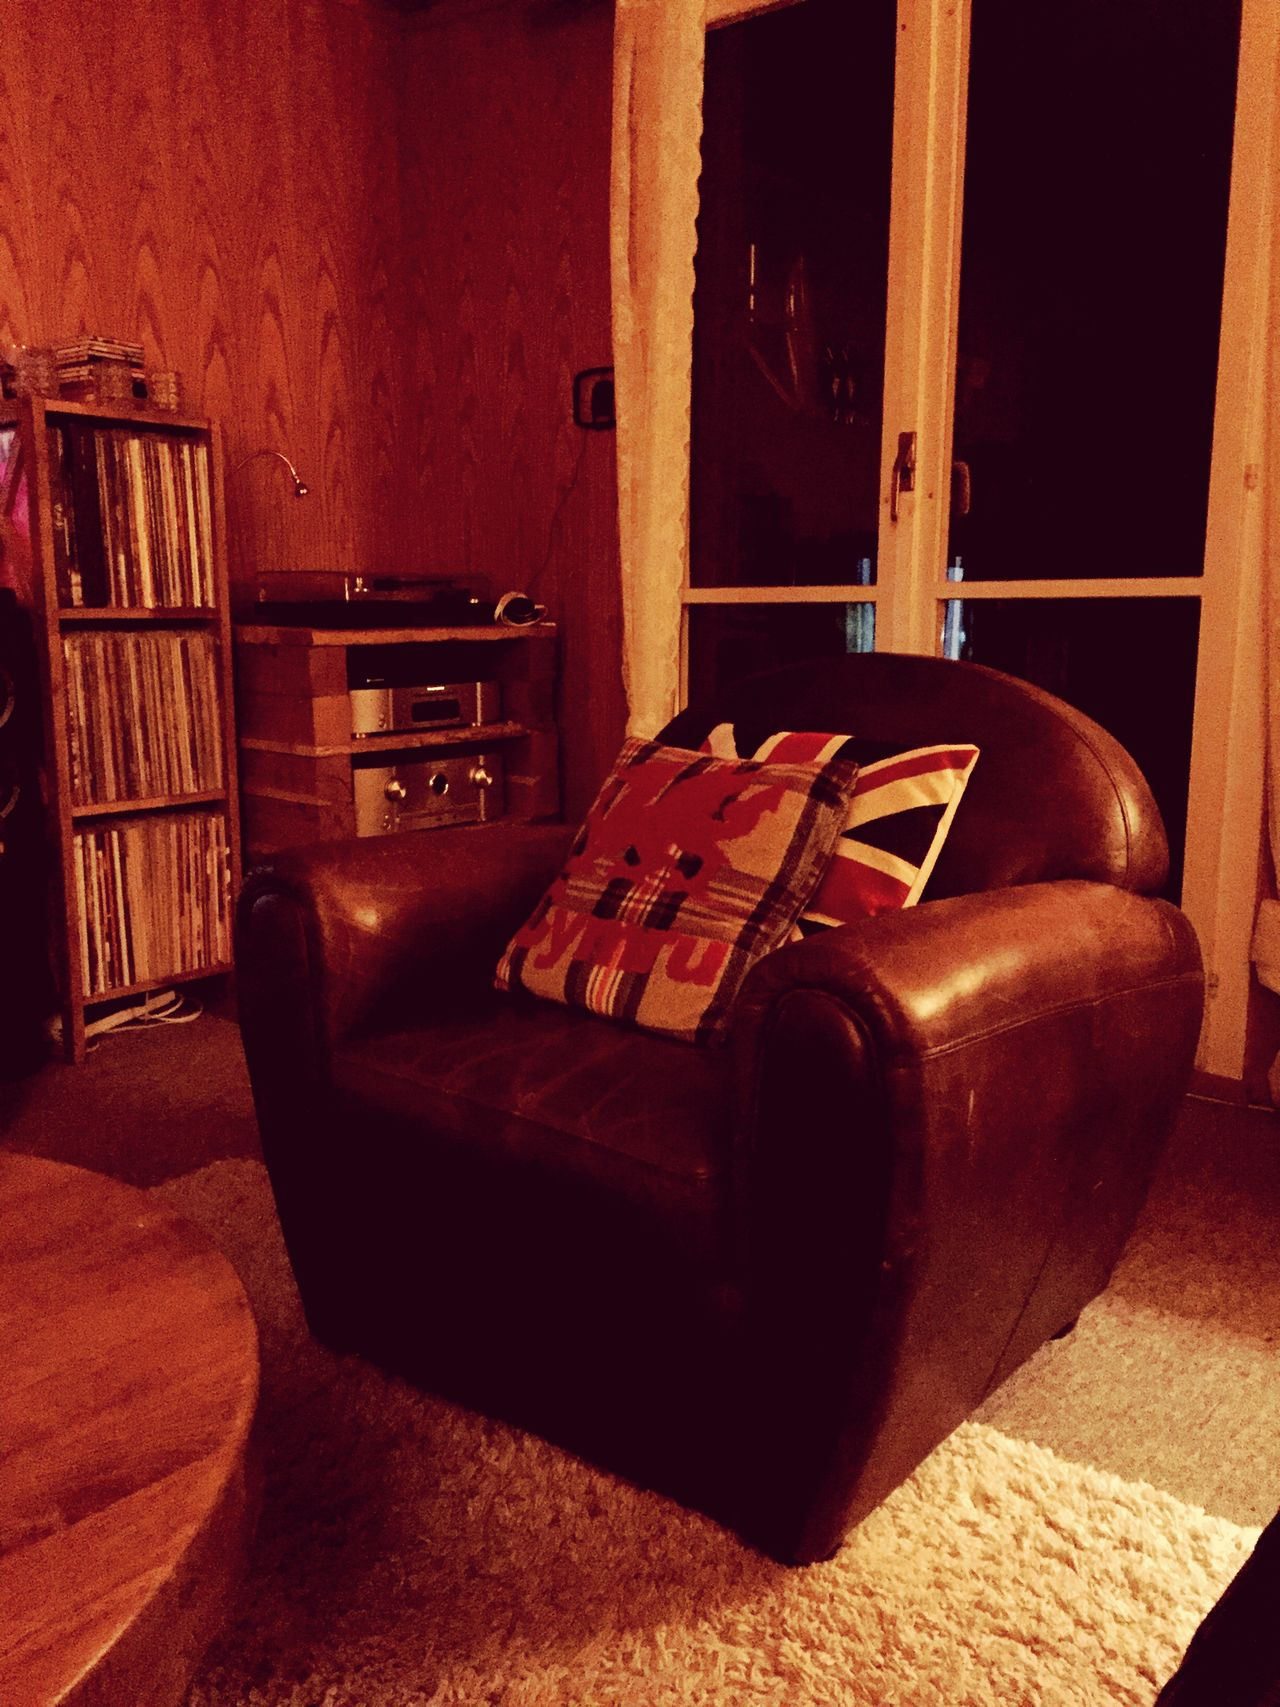 Home Interior Indoors  Leather Chair Cushion Cymru Union Jack Wooden Wall Records Living Room